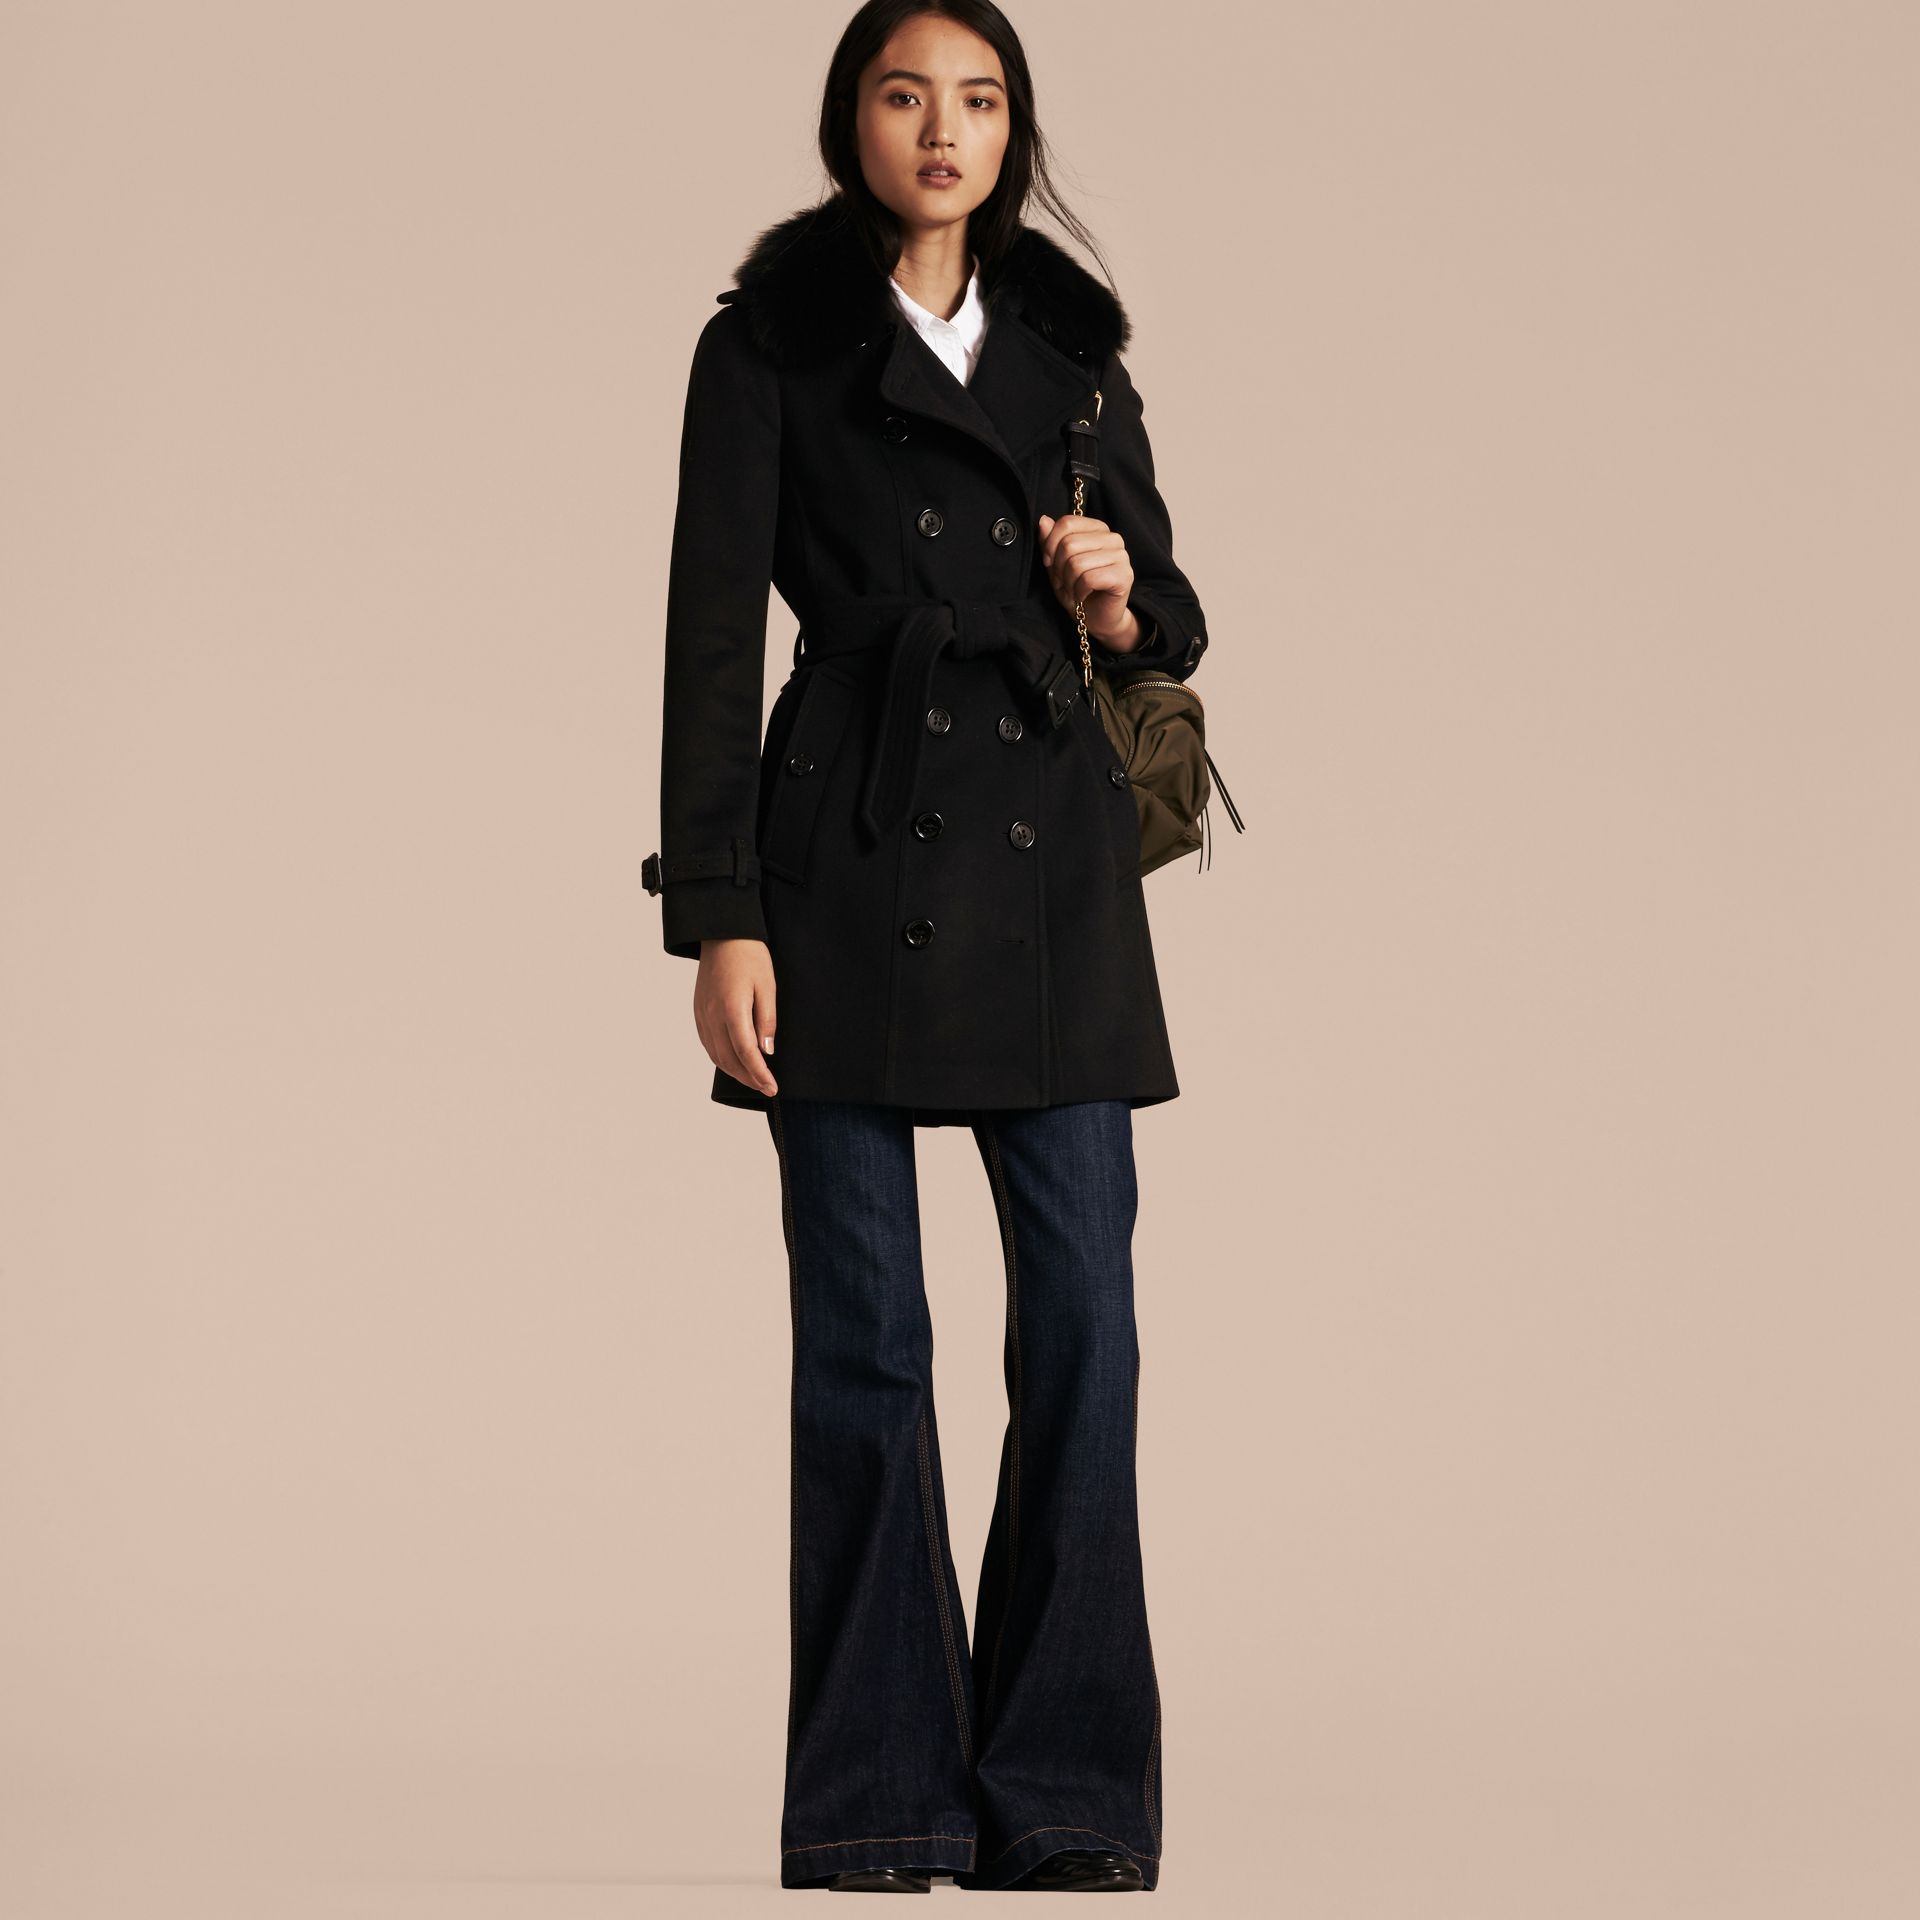 Wool Cashmere Trench Coat with Fur Collar in Black - Women | Burberry Australia - gallery image 6